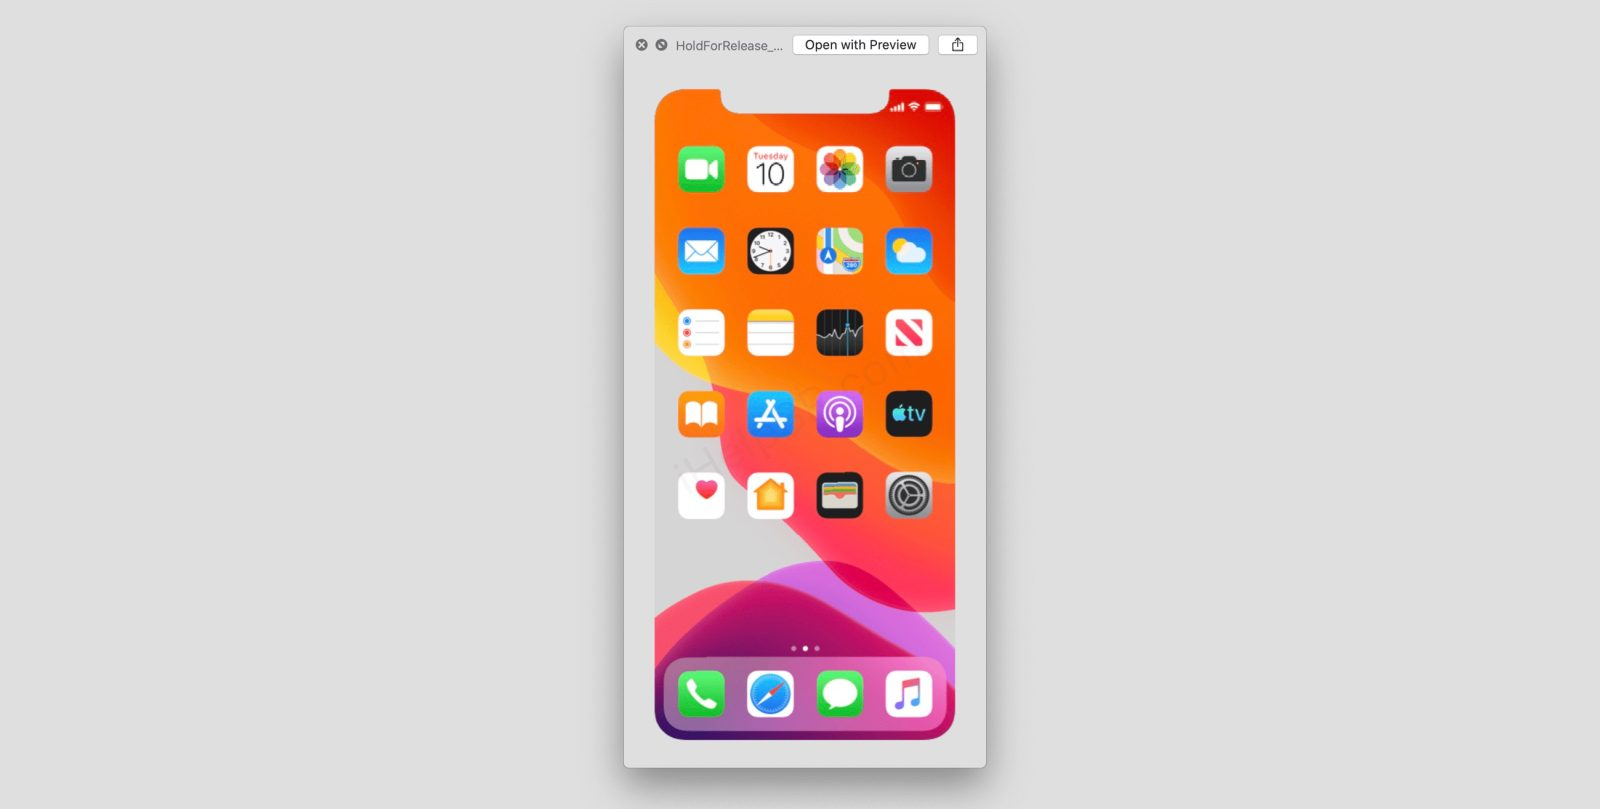 iOS 13 beta asset suggests iPhone 11 Apple event on September 10th